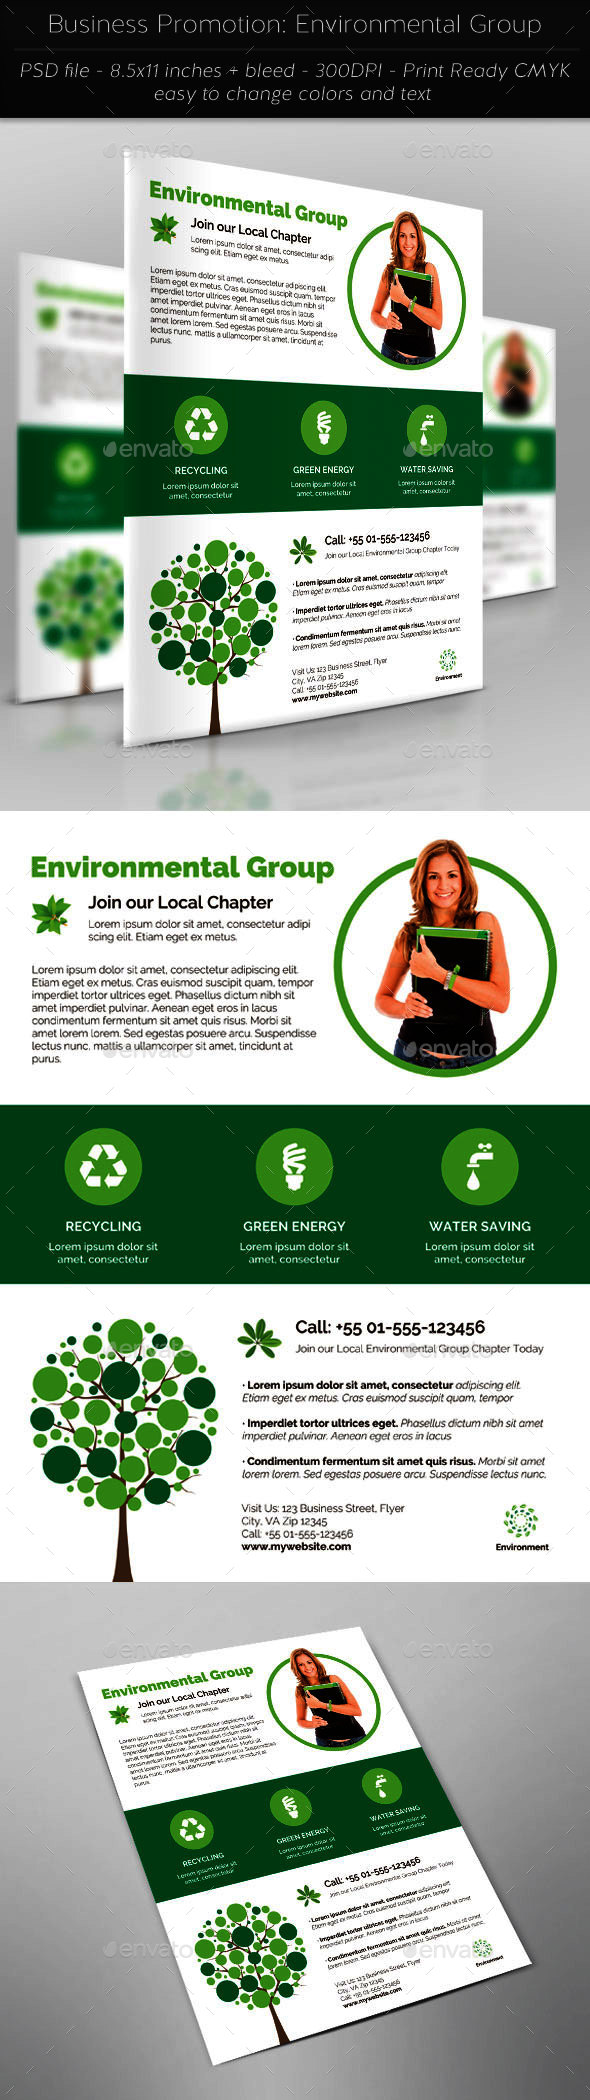 Business Promotion Environmental Group